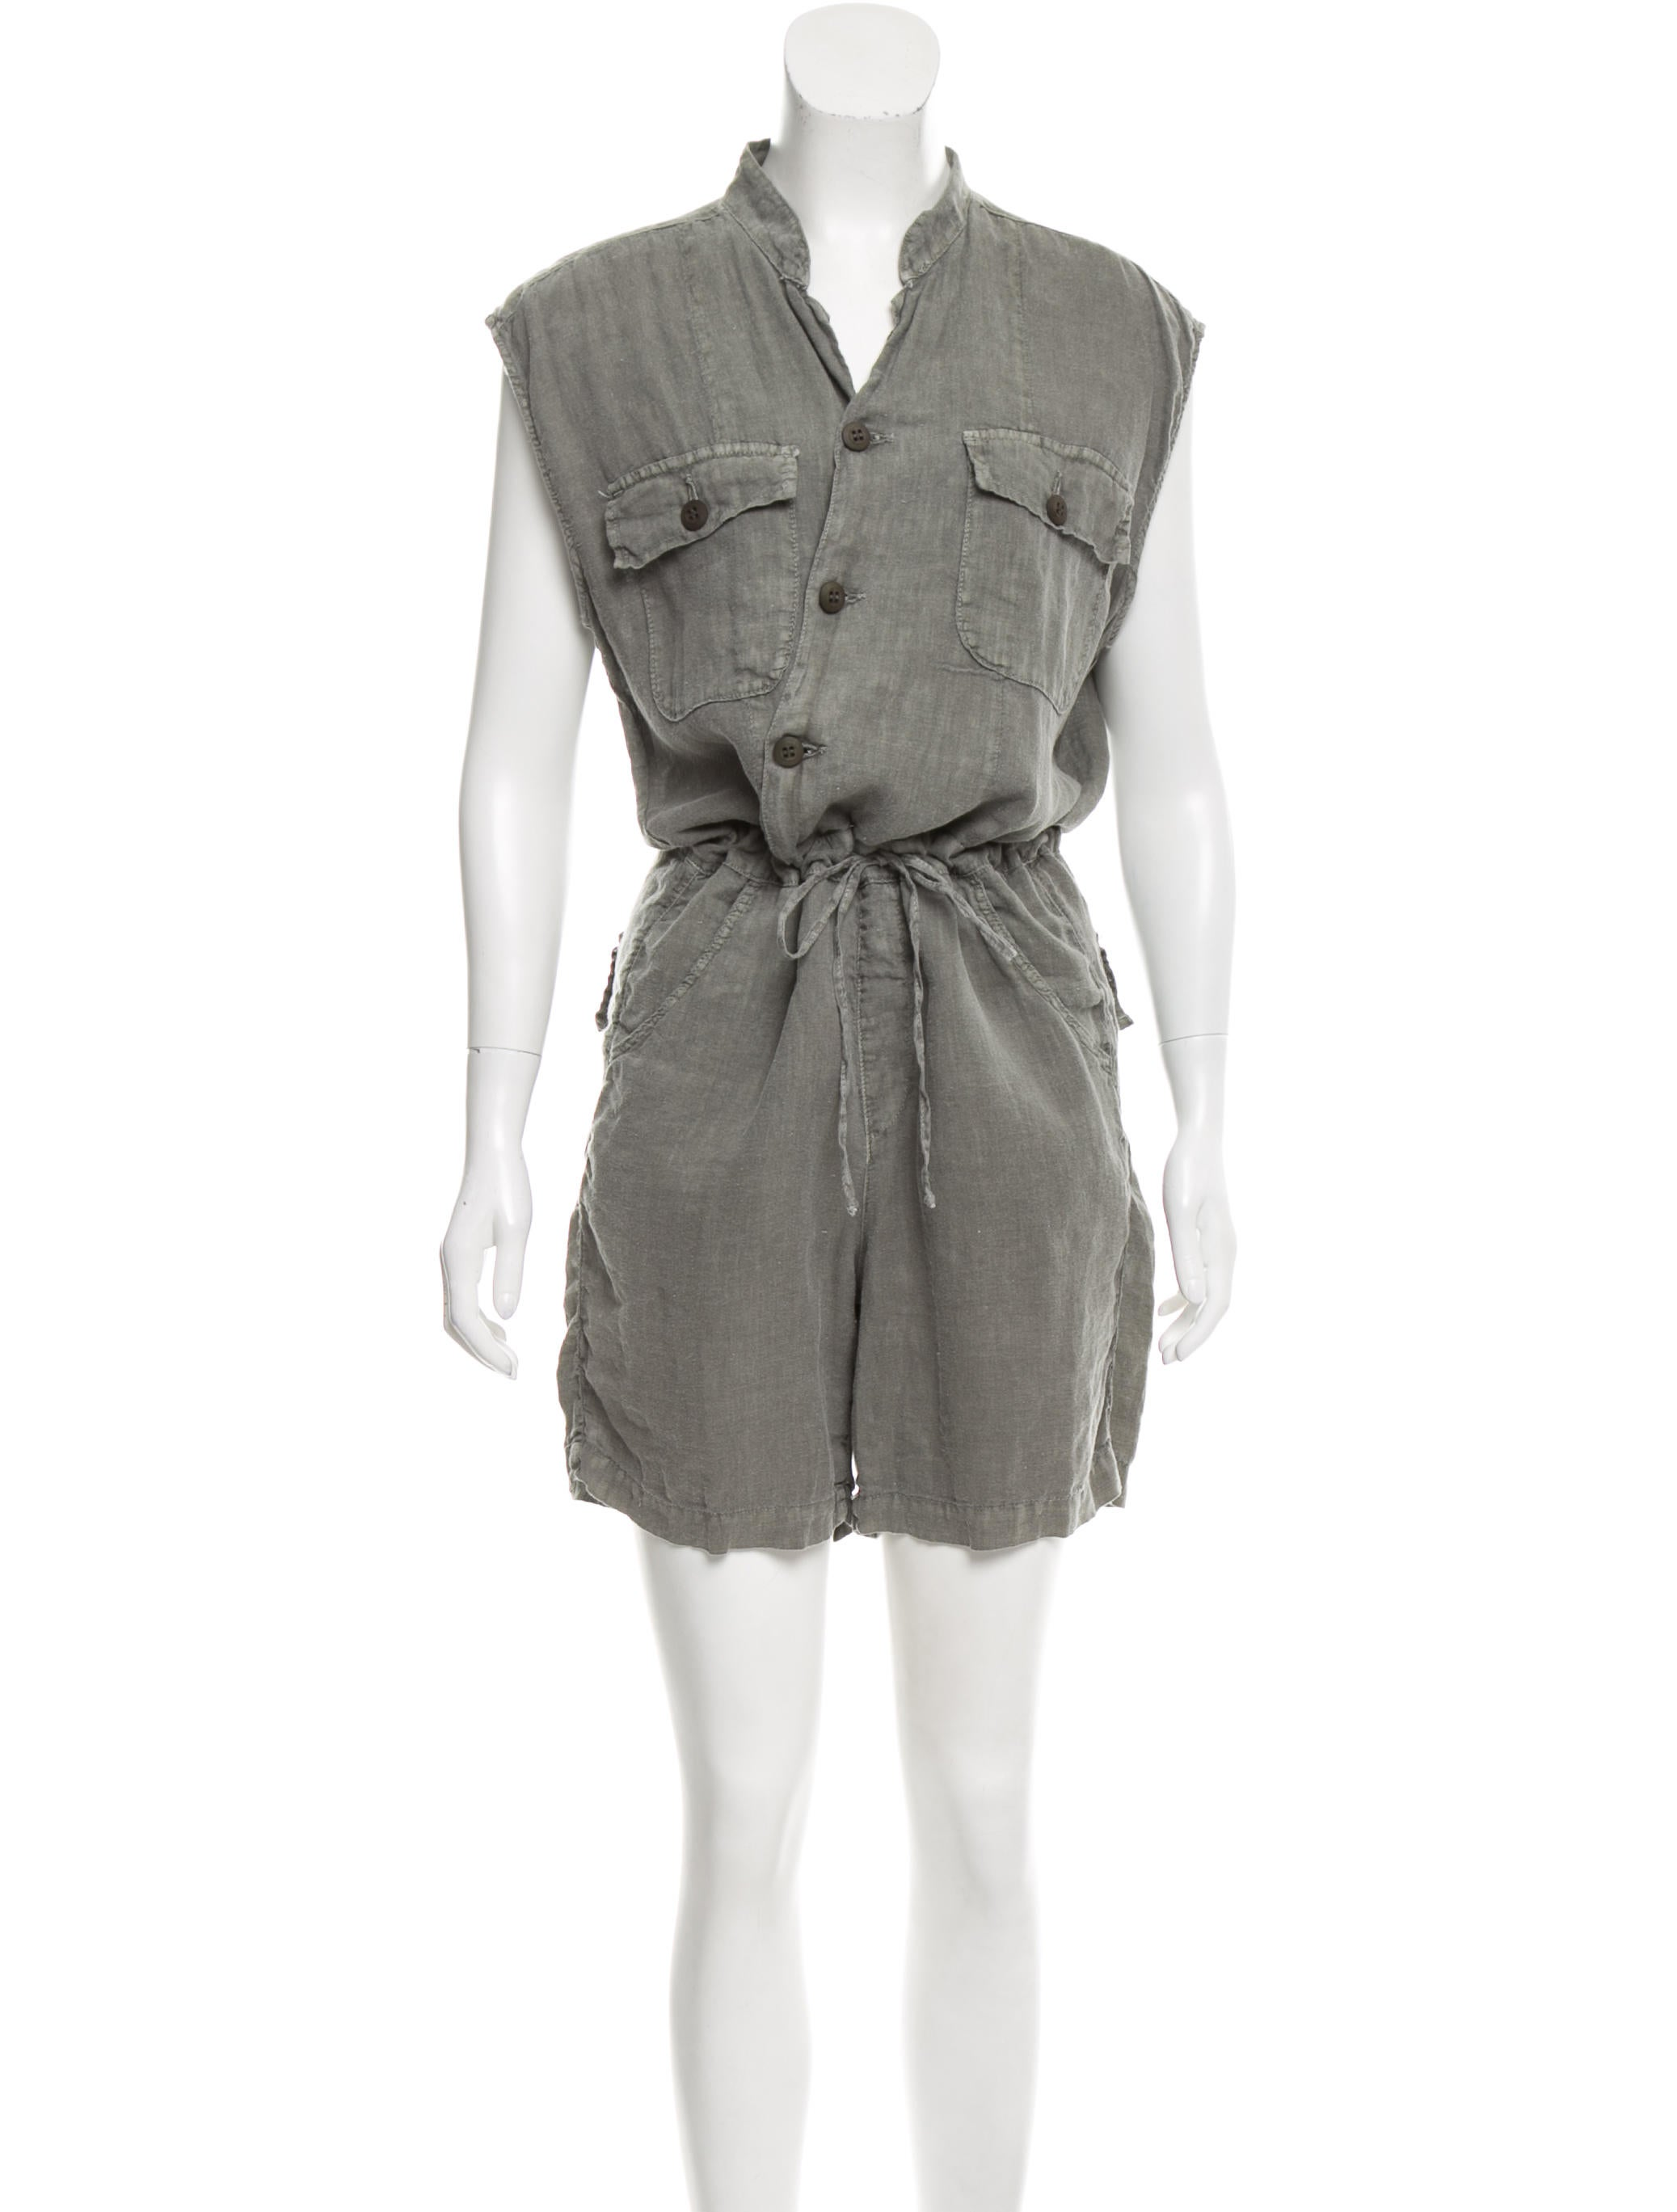 Nsf linen button up romper clothing wn020367 the for Linen button up shirt womens